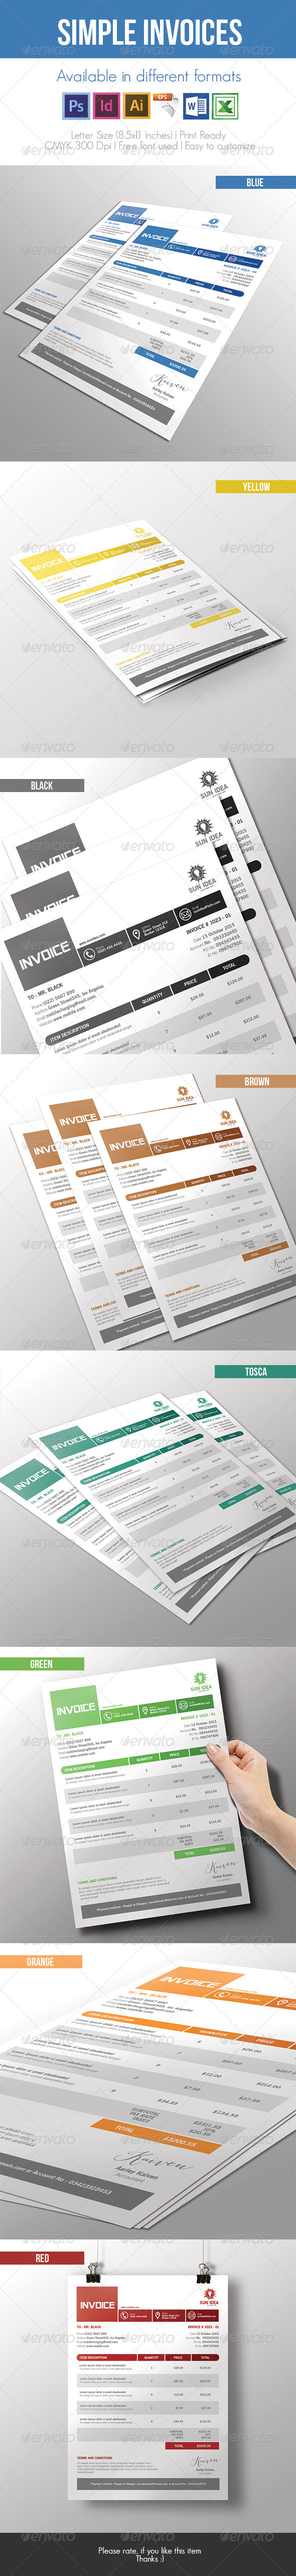 GraphicRiver Simple Invoices 7415564